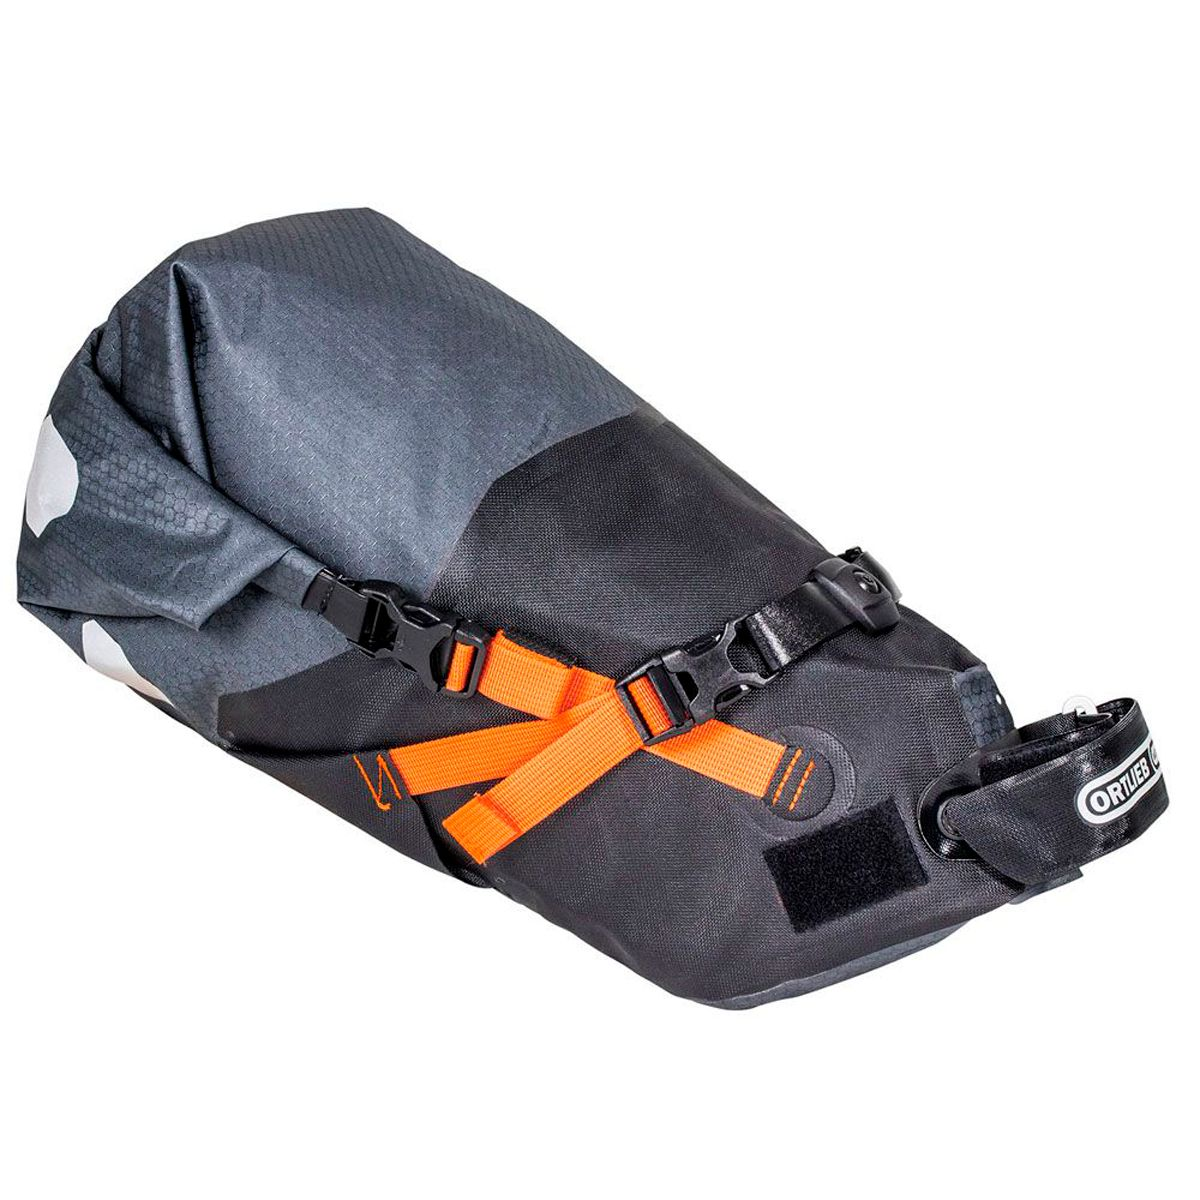 BIKE PACKING SEAT-PACK M Satteltasche